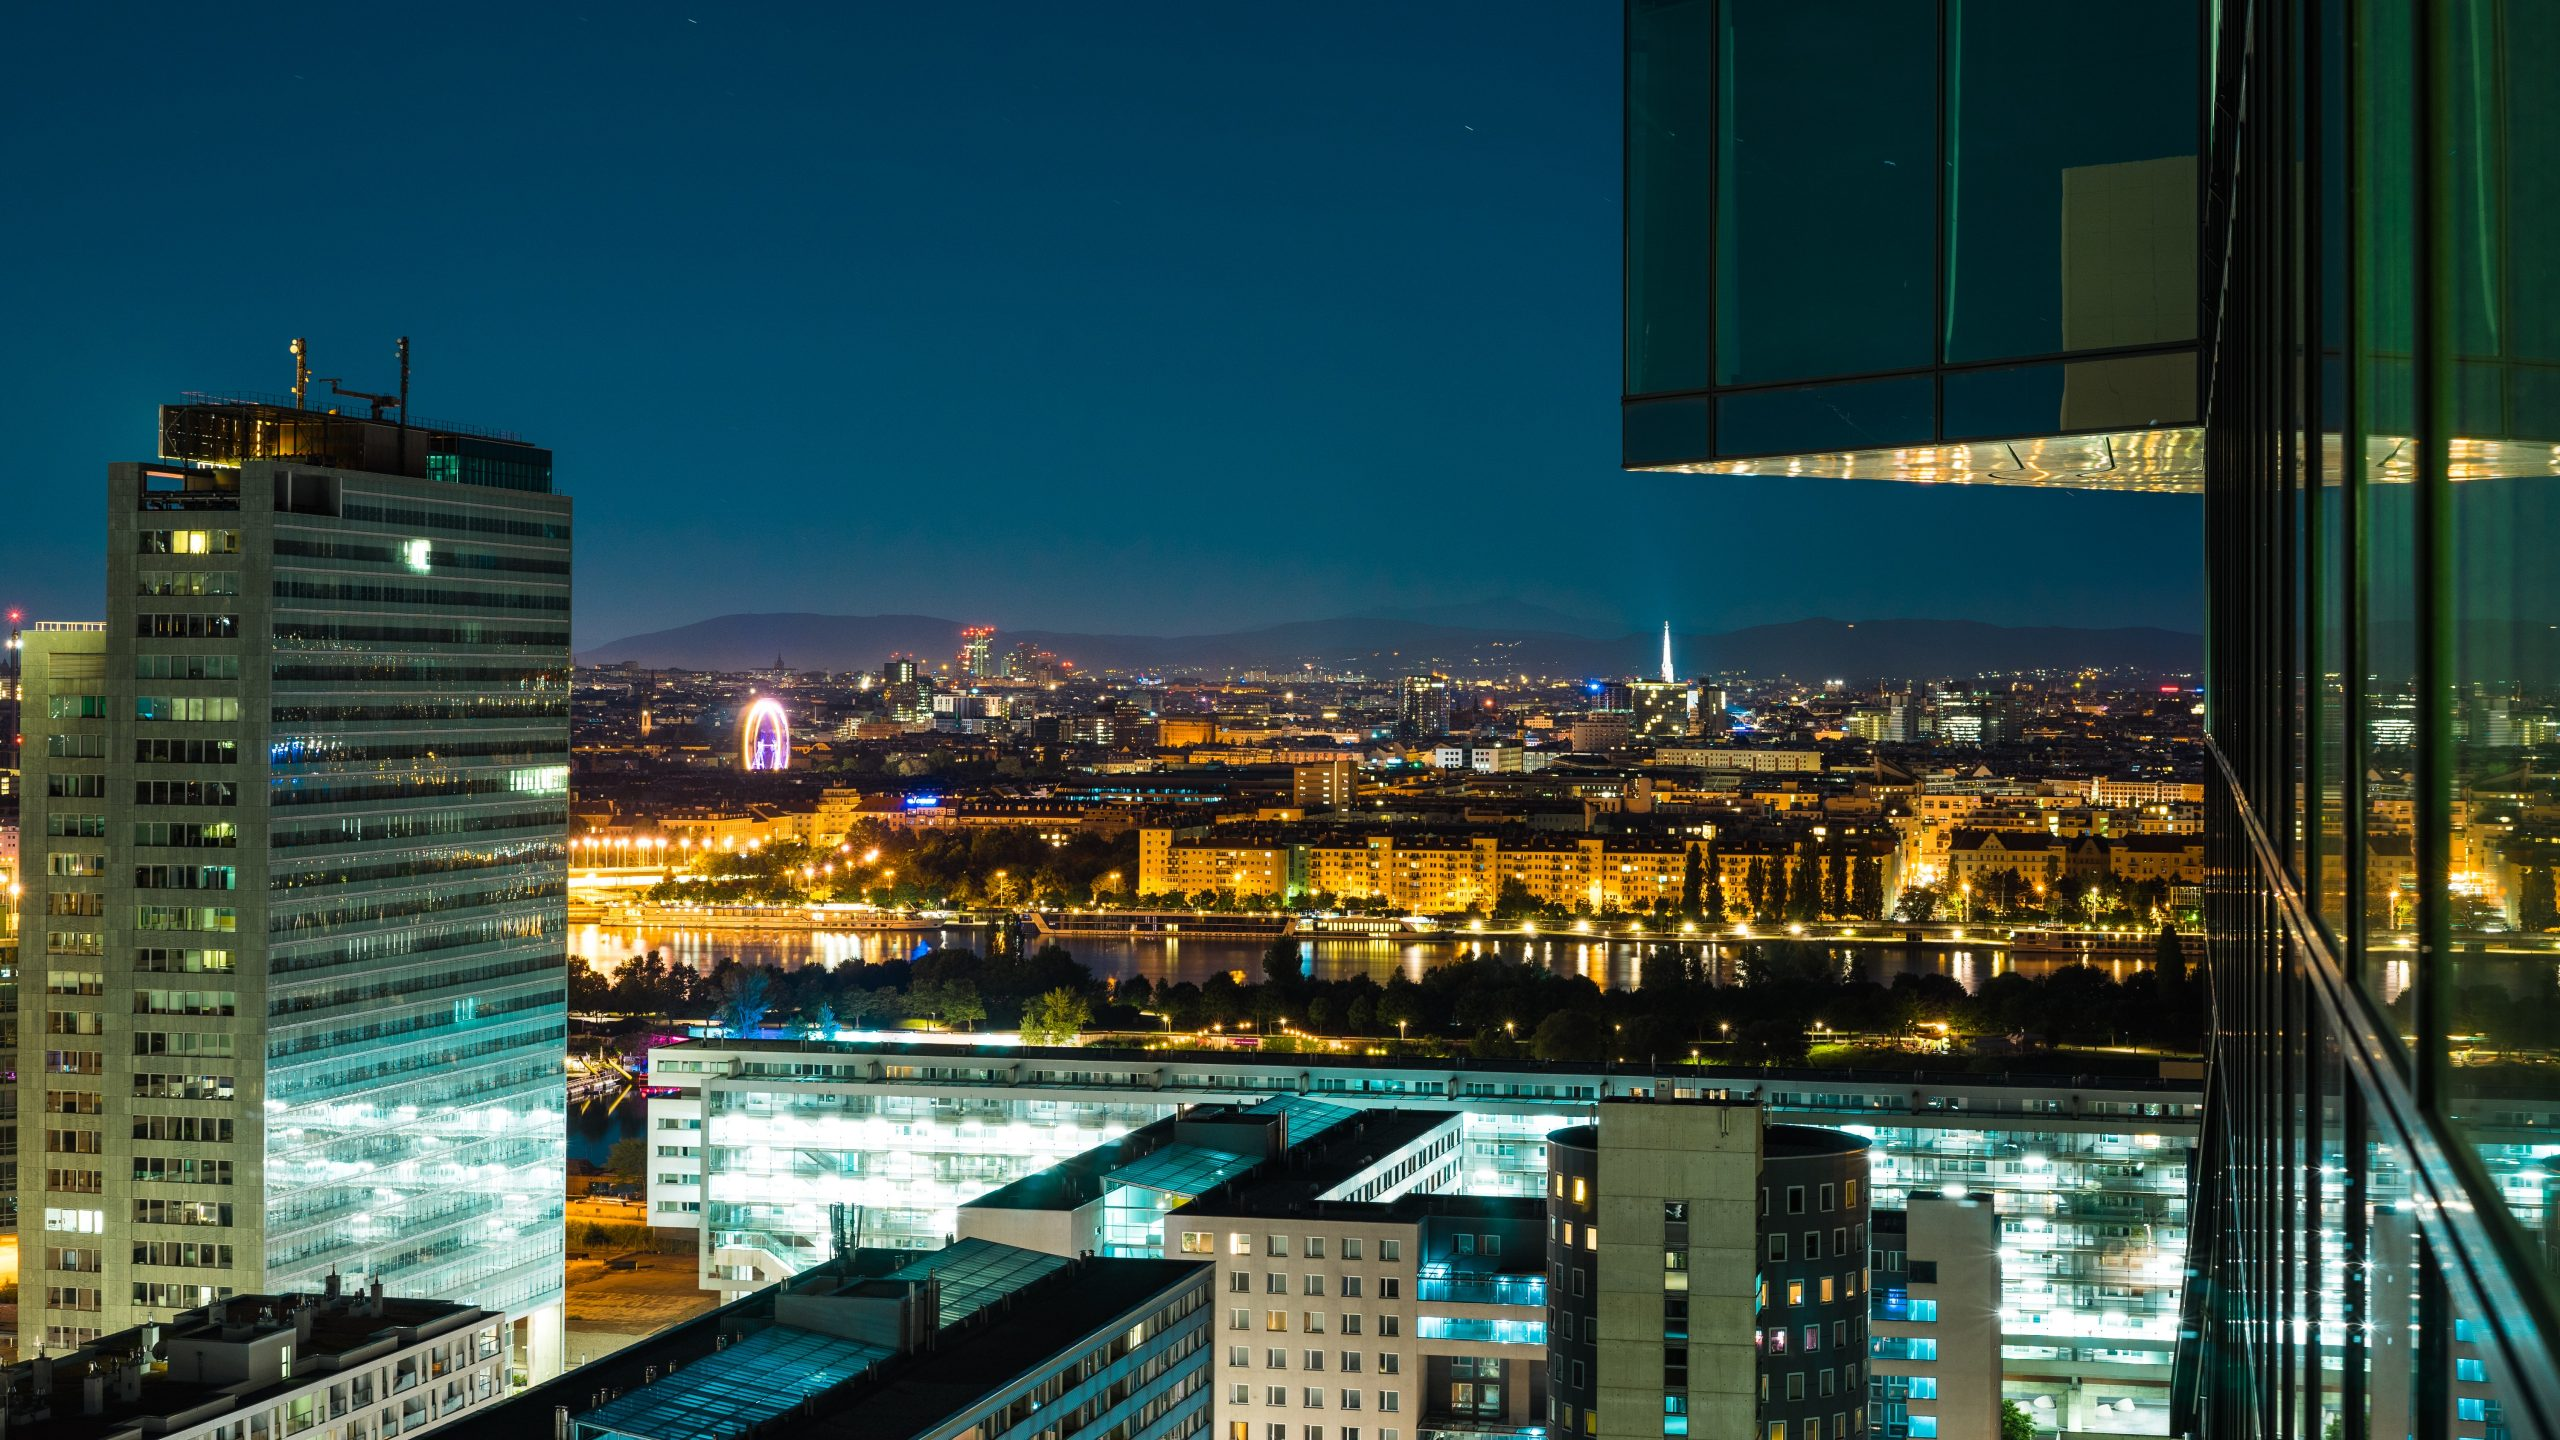 Vienna-the Mix of Modern and Traditional